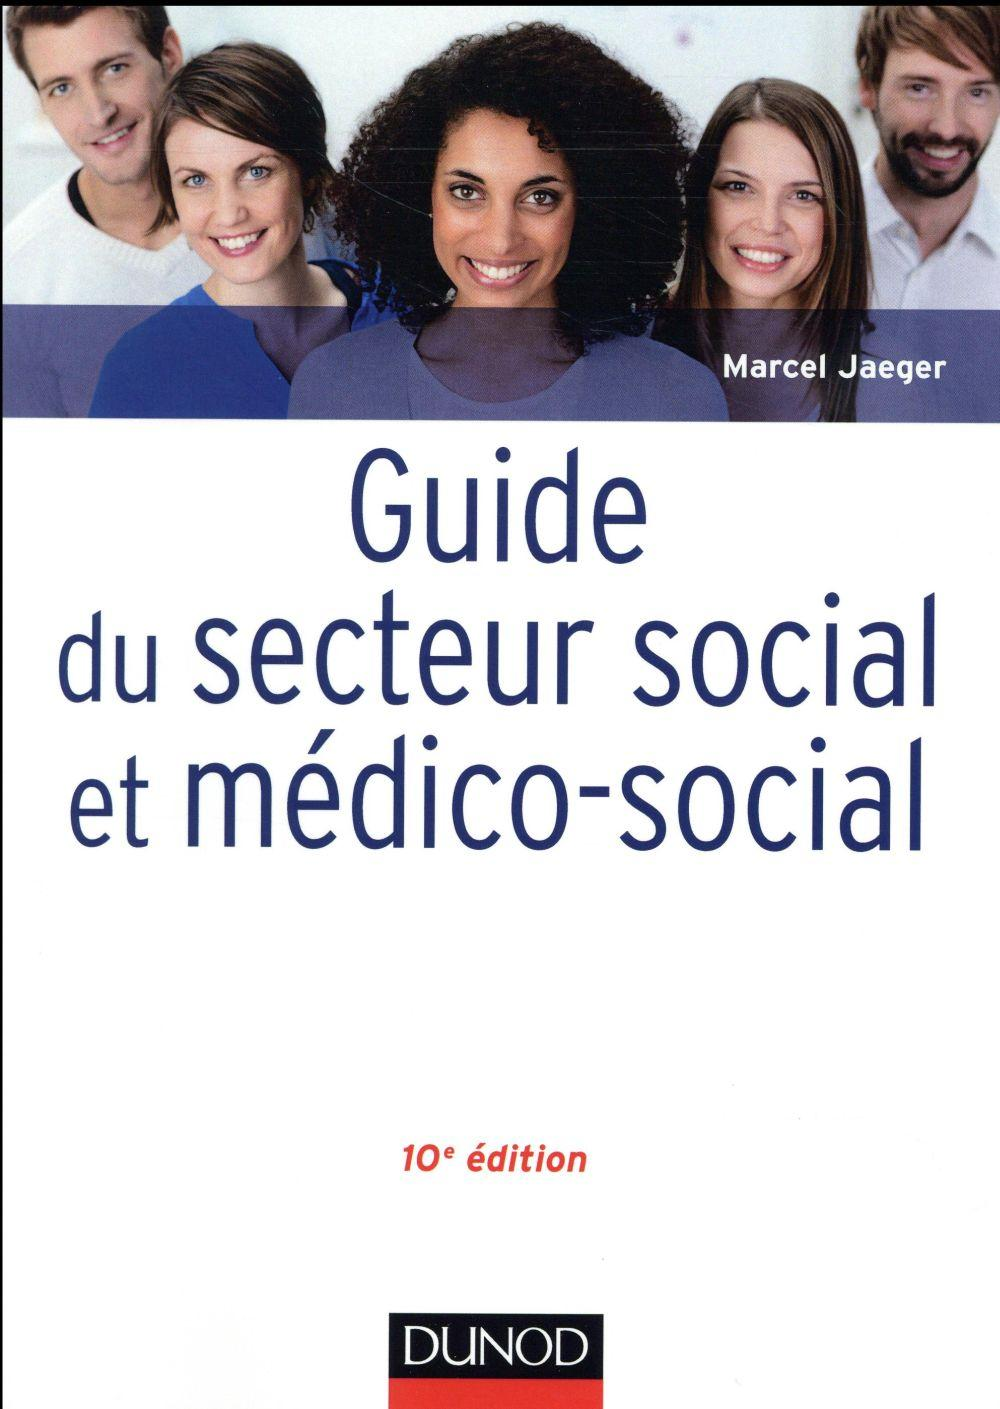 Guide du secteur social et médico-social ; professions, institutions, concepts (10e édition)  - Marcel Jaeger